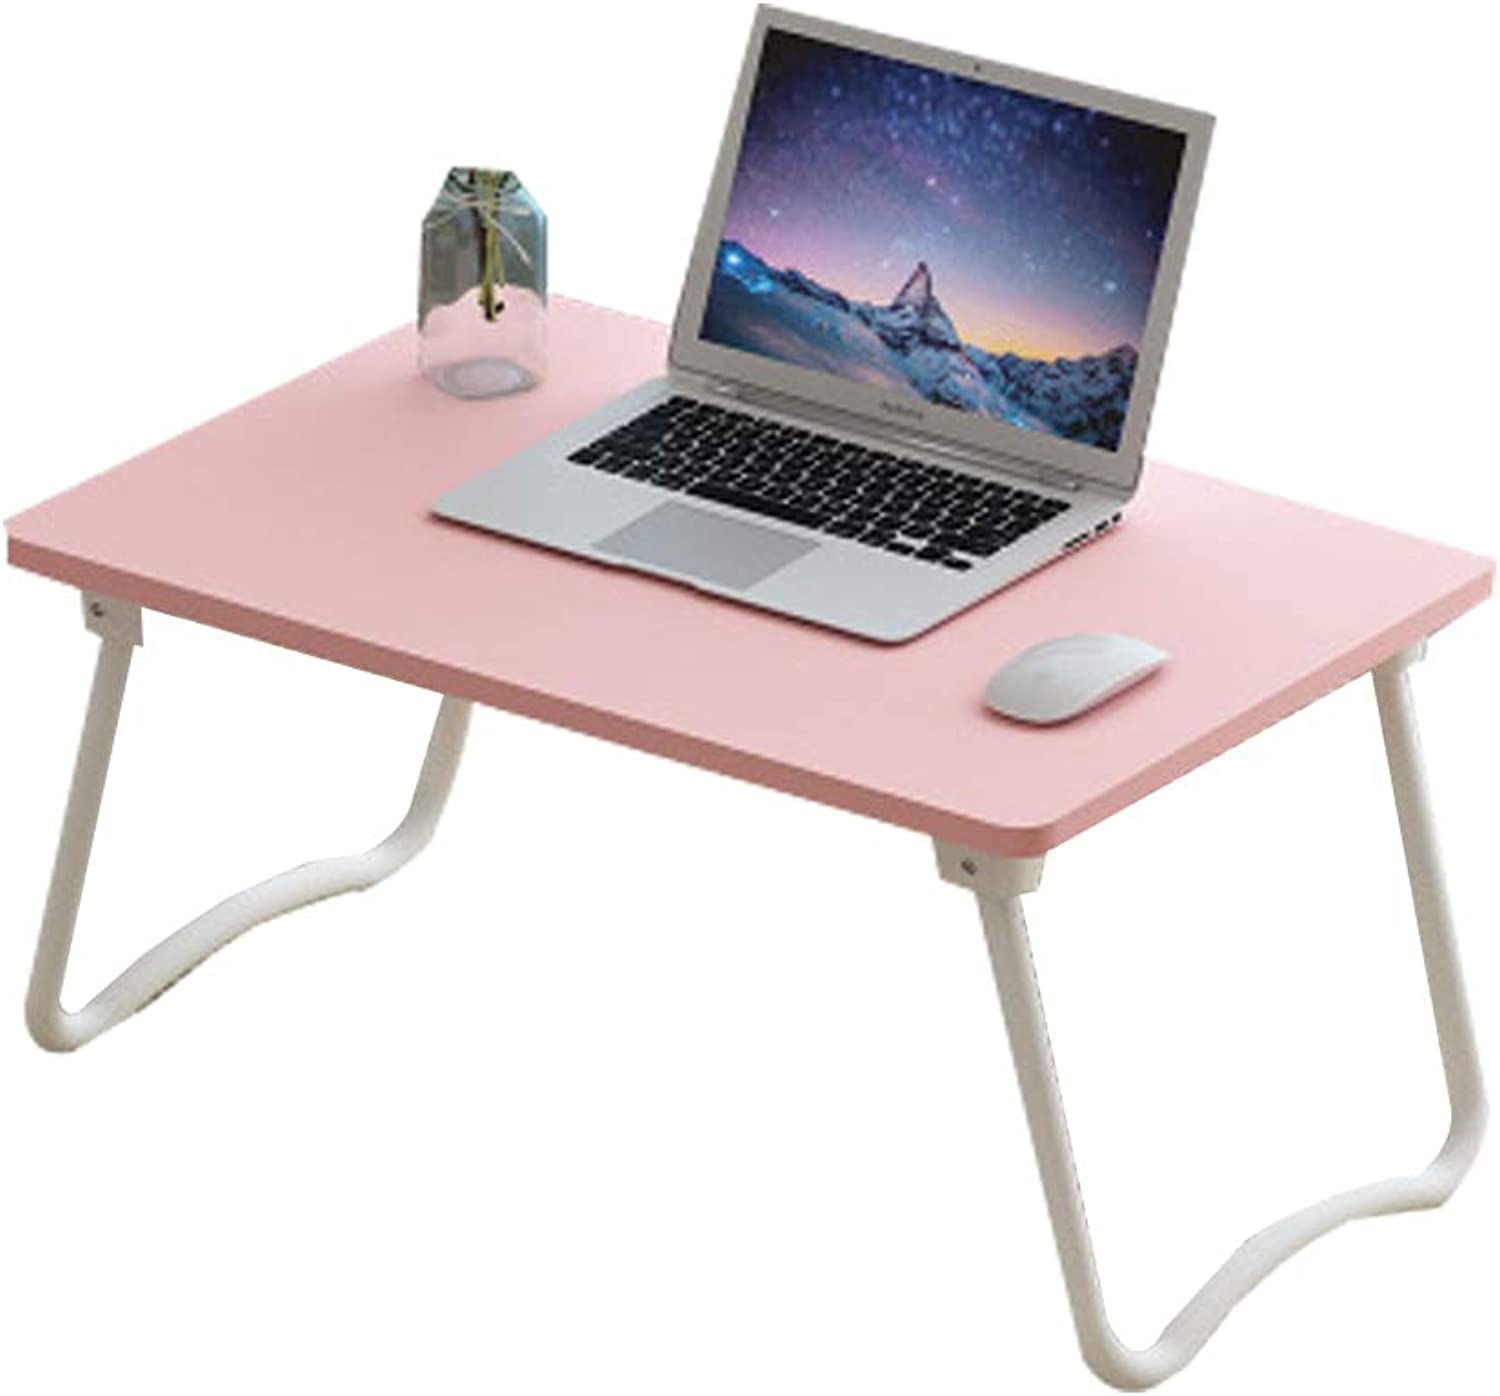 Hai Yan Portable Folding Table Folding Table - Bed Desk Folding Table College Dormitory Laptop Computer Desk Bedroom Multi-Function Lazy Small Table - Size  60x40x29cm (color   B)